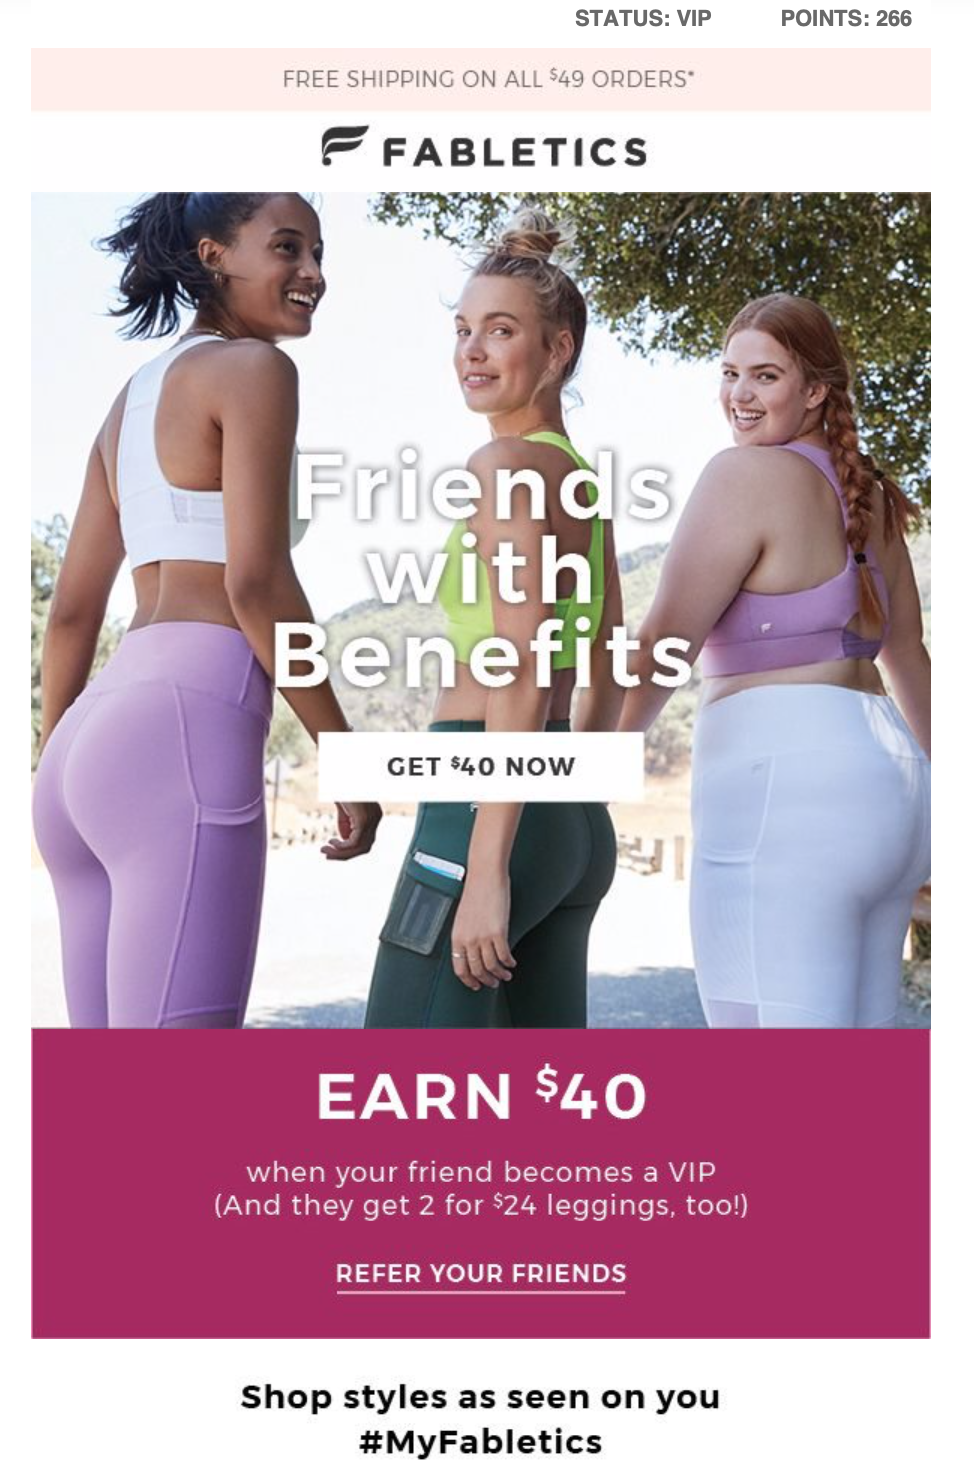 An email sent by Fabletics to promote their referral program